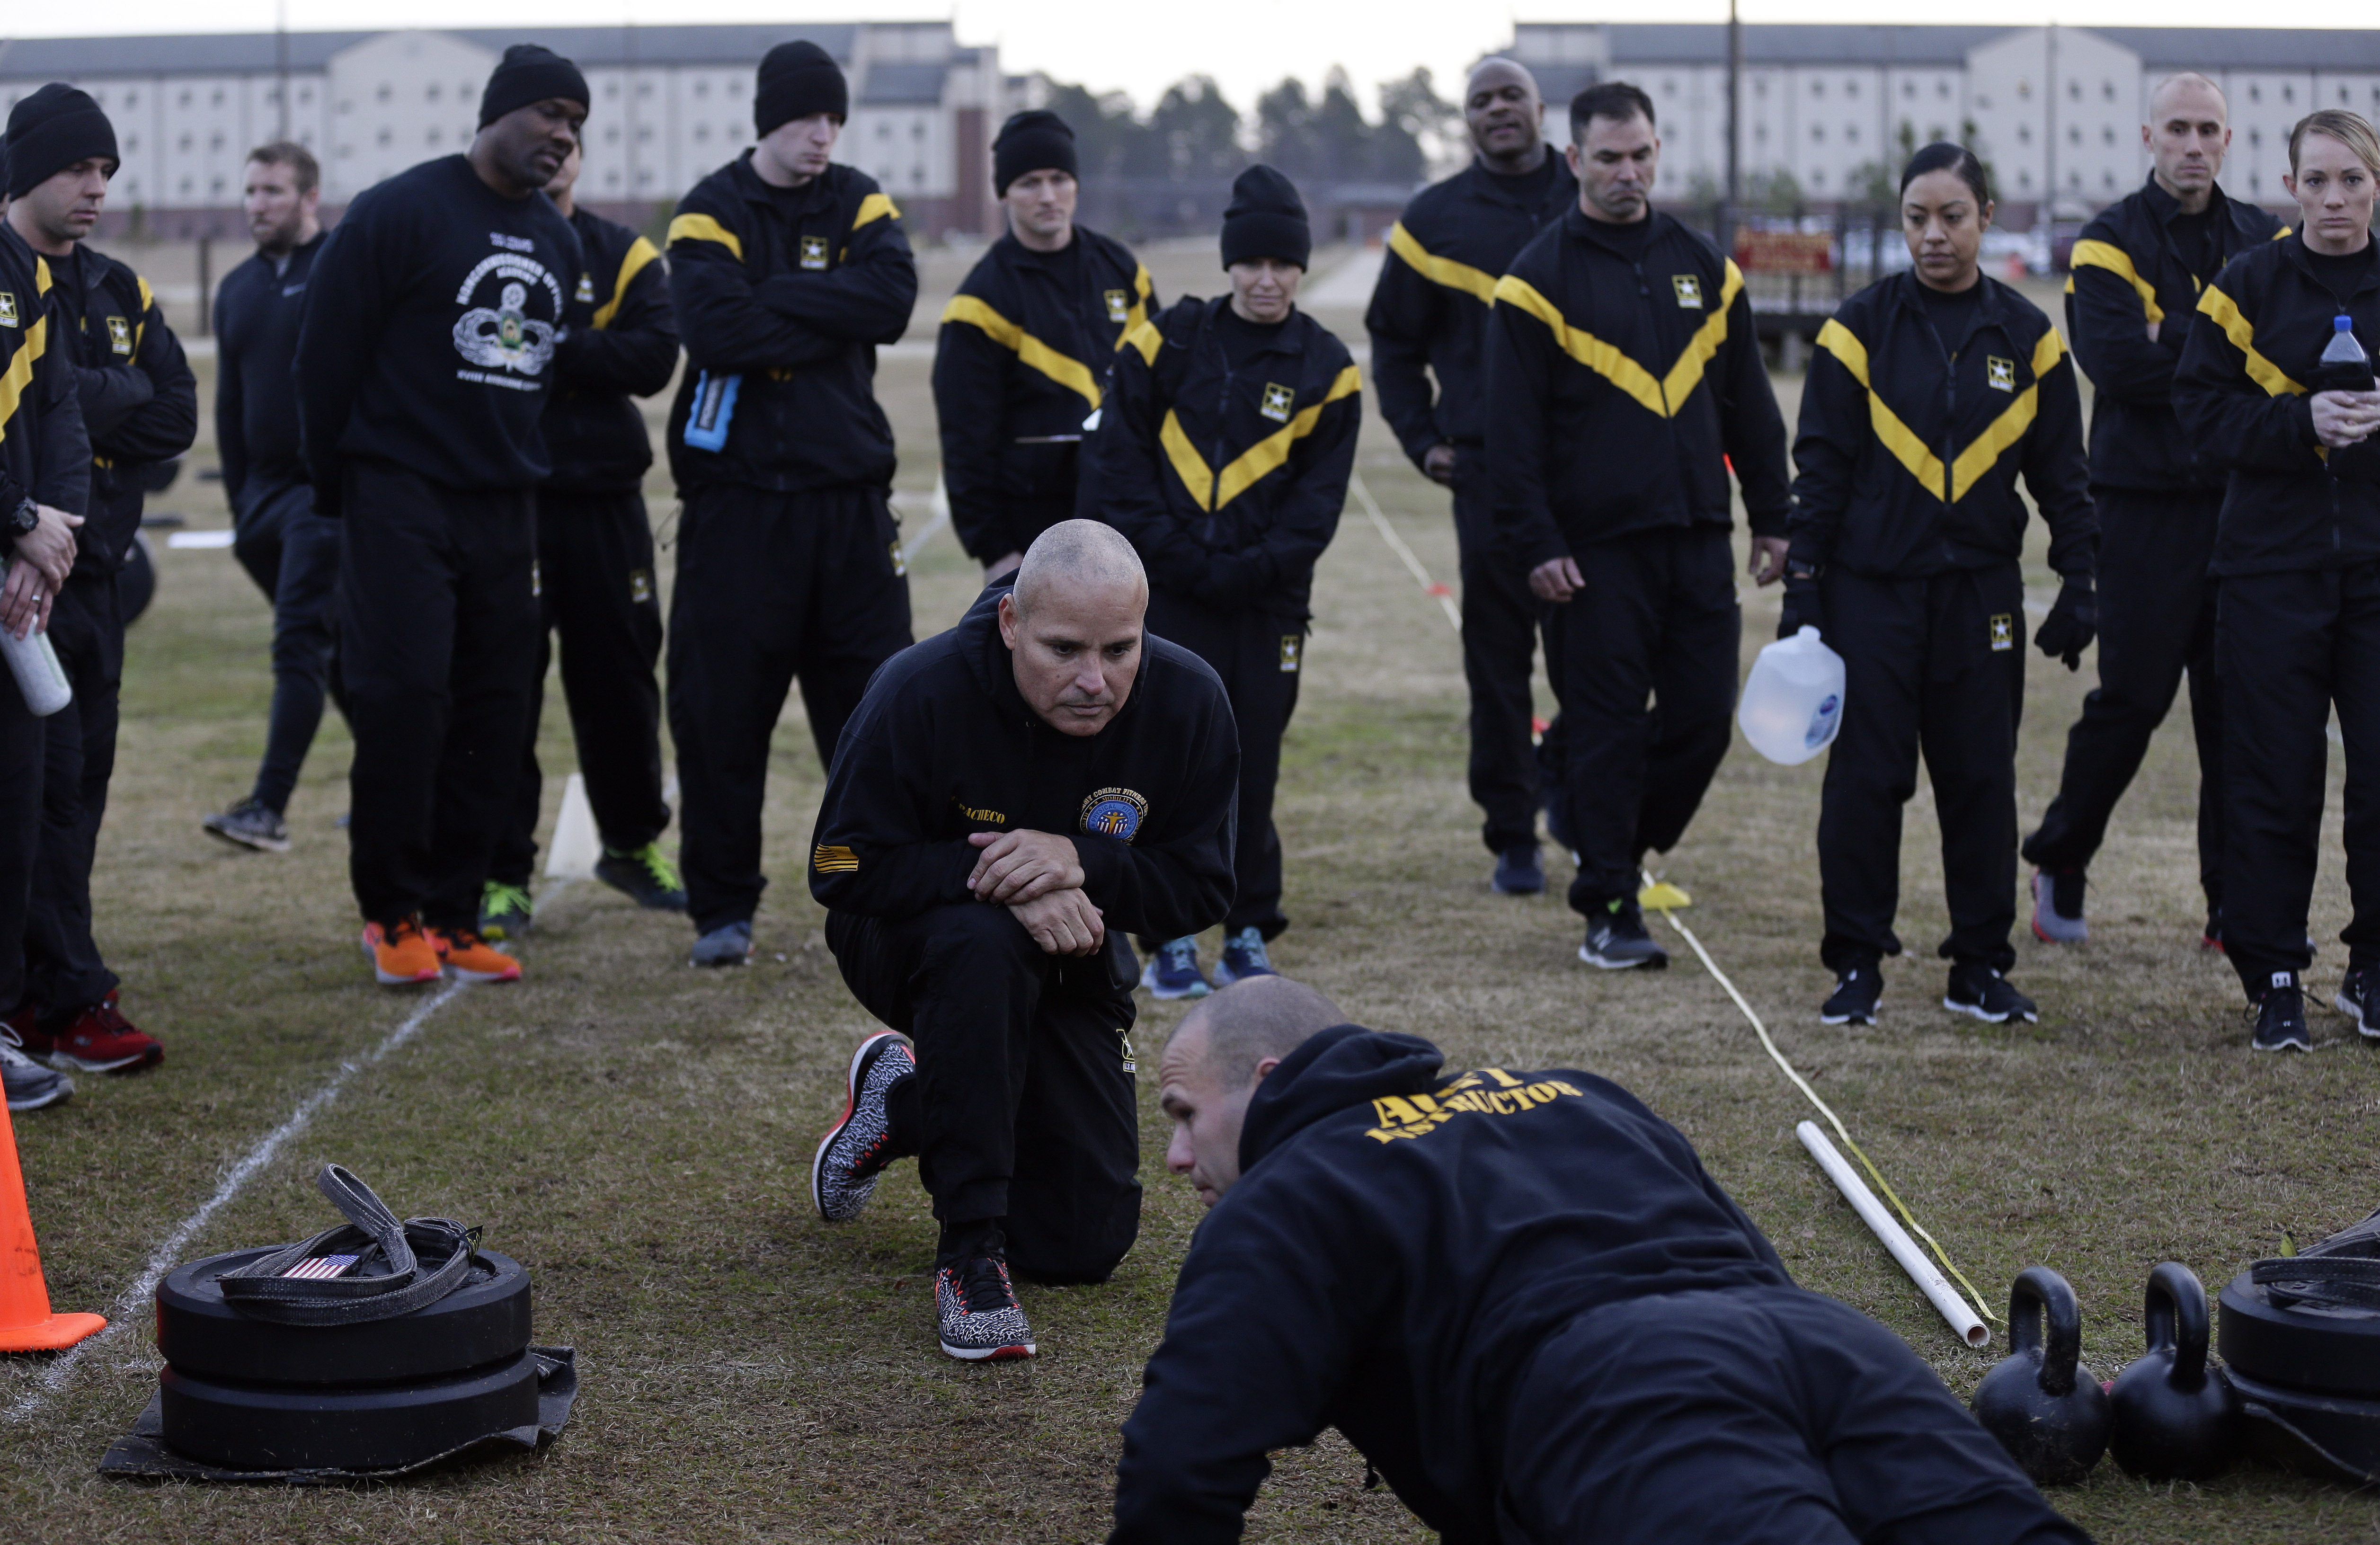 Army aims for more combat-ready troops with new fitness test